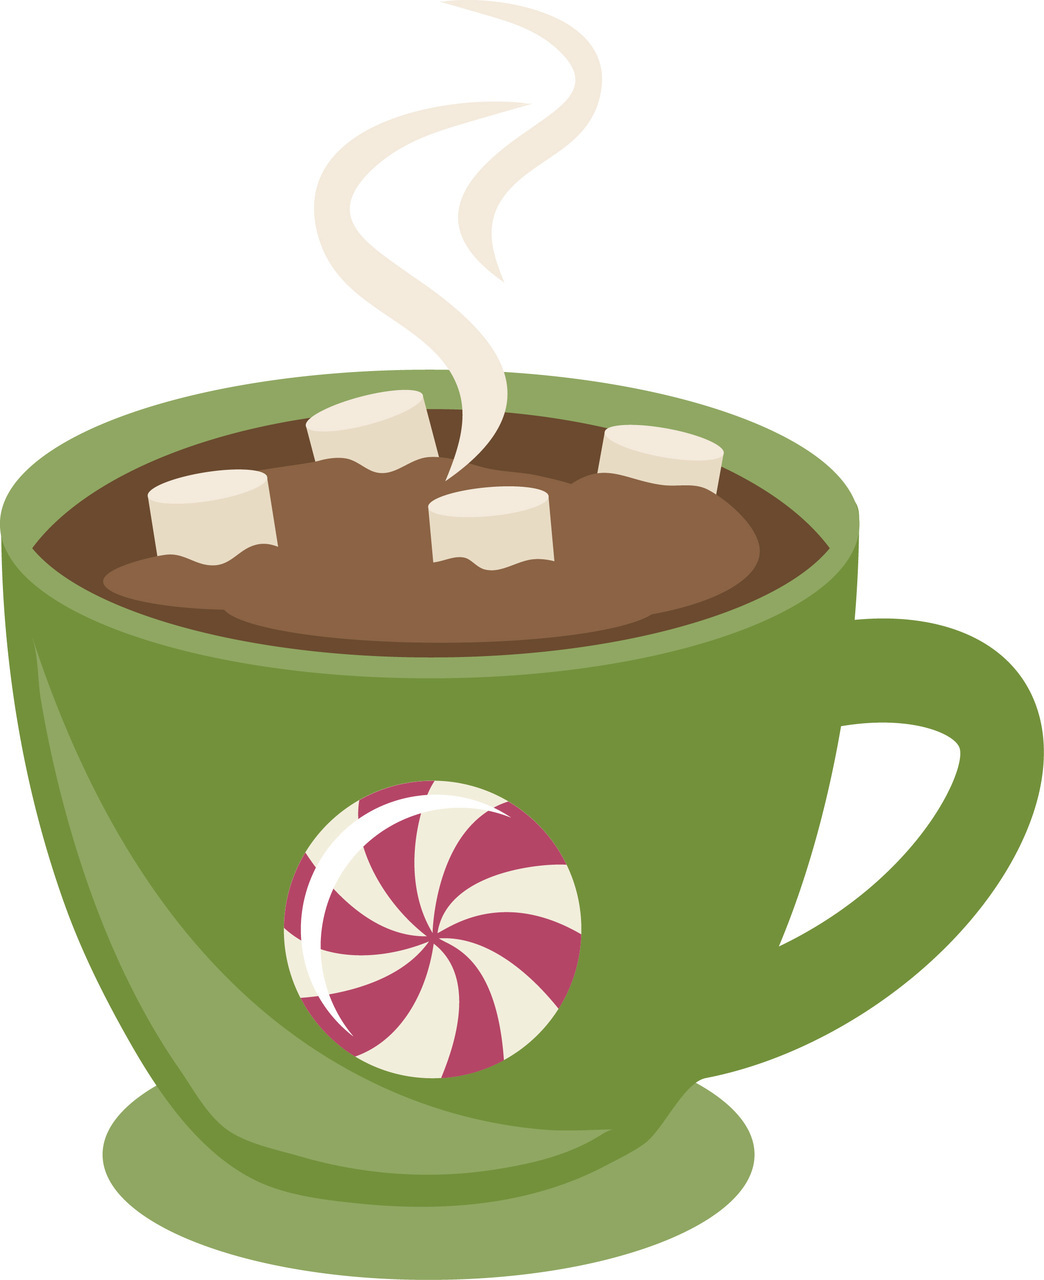 Hot chocolate clipart jpg